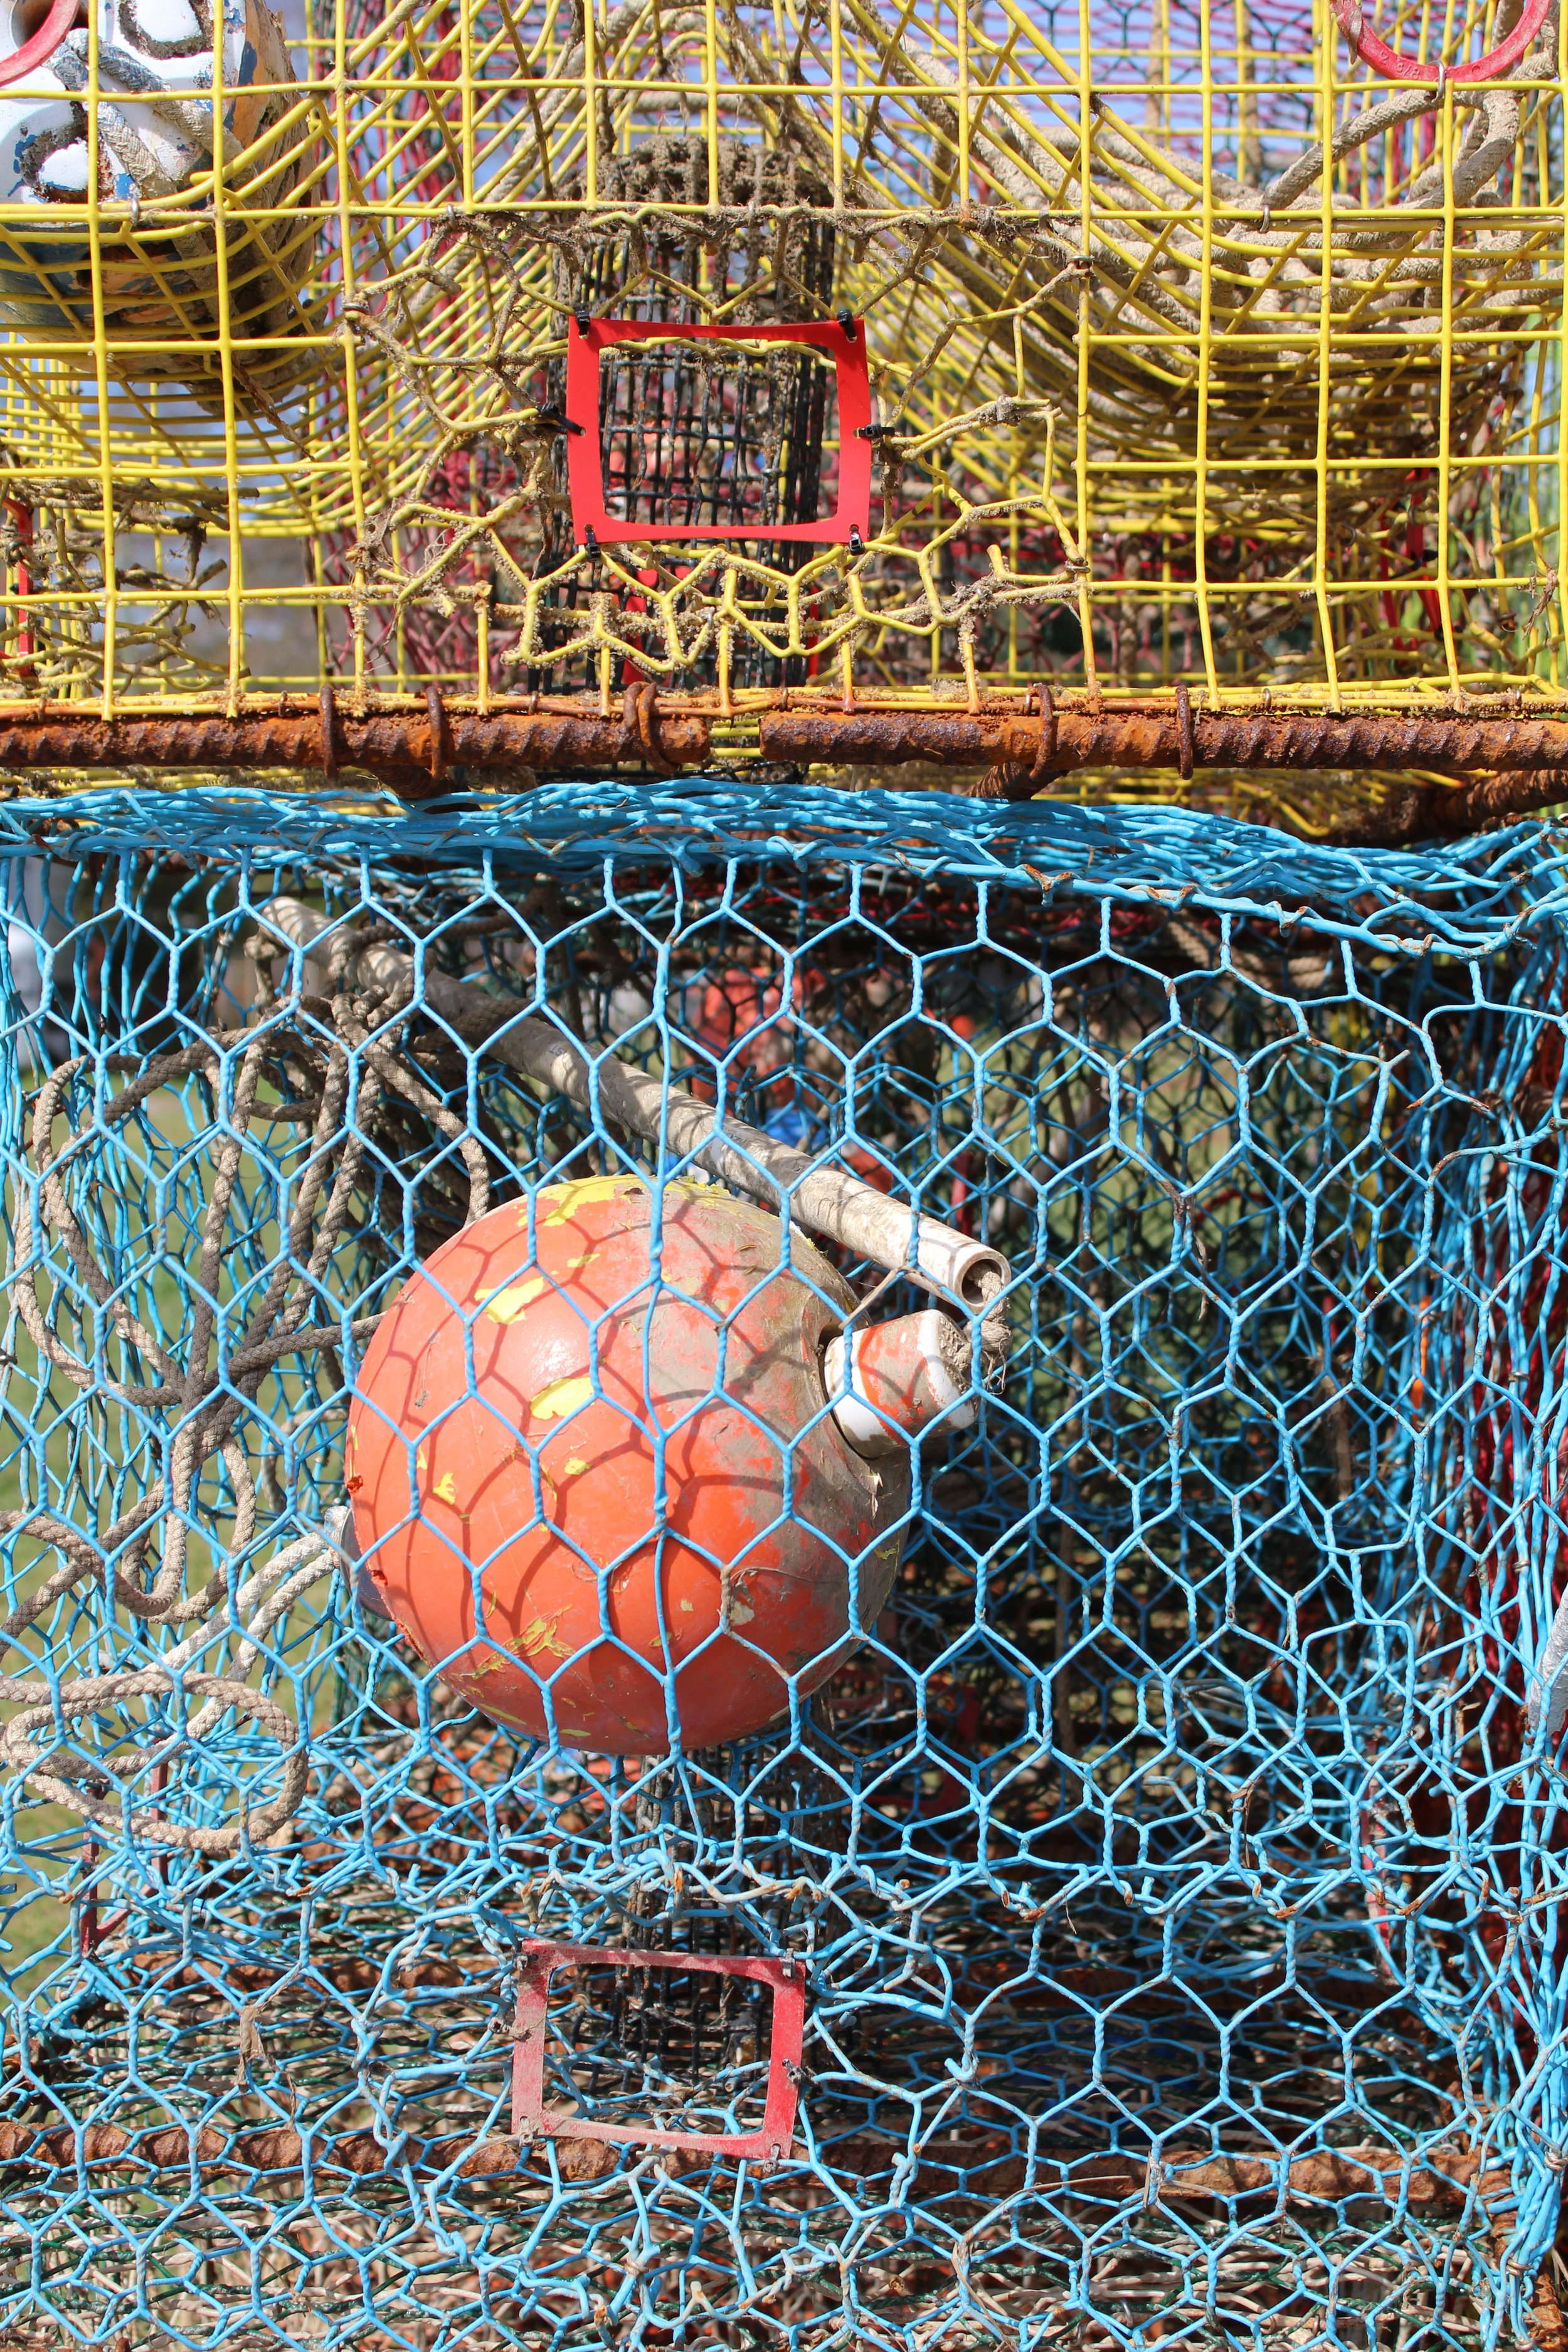 The bycatch reduction devices fitted over the mouths of these crab traps will help prevent diamondback terrapins -- but not crabs -- from entering. (Photo: E. Weeks/SCDNR)